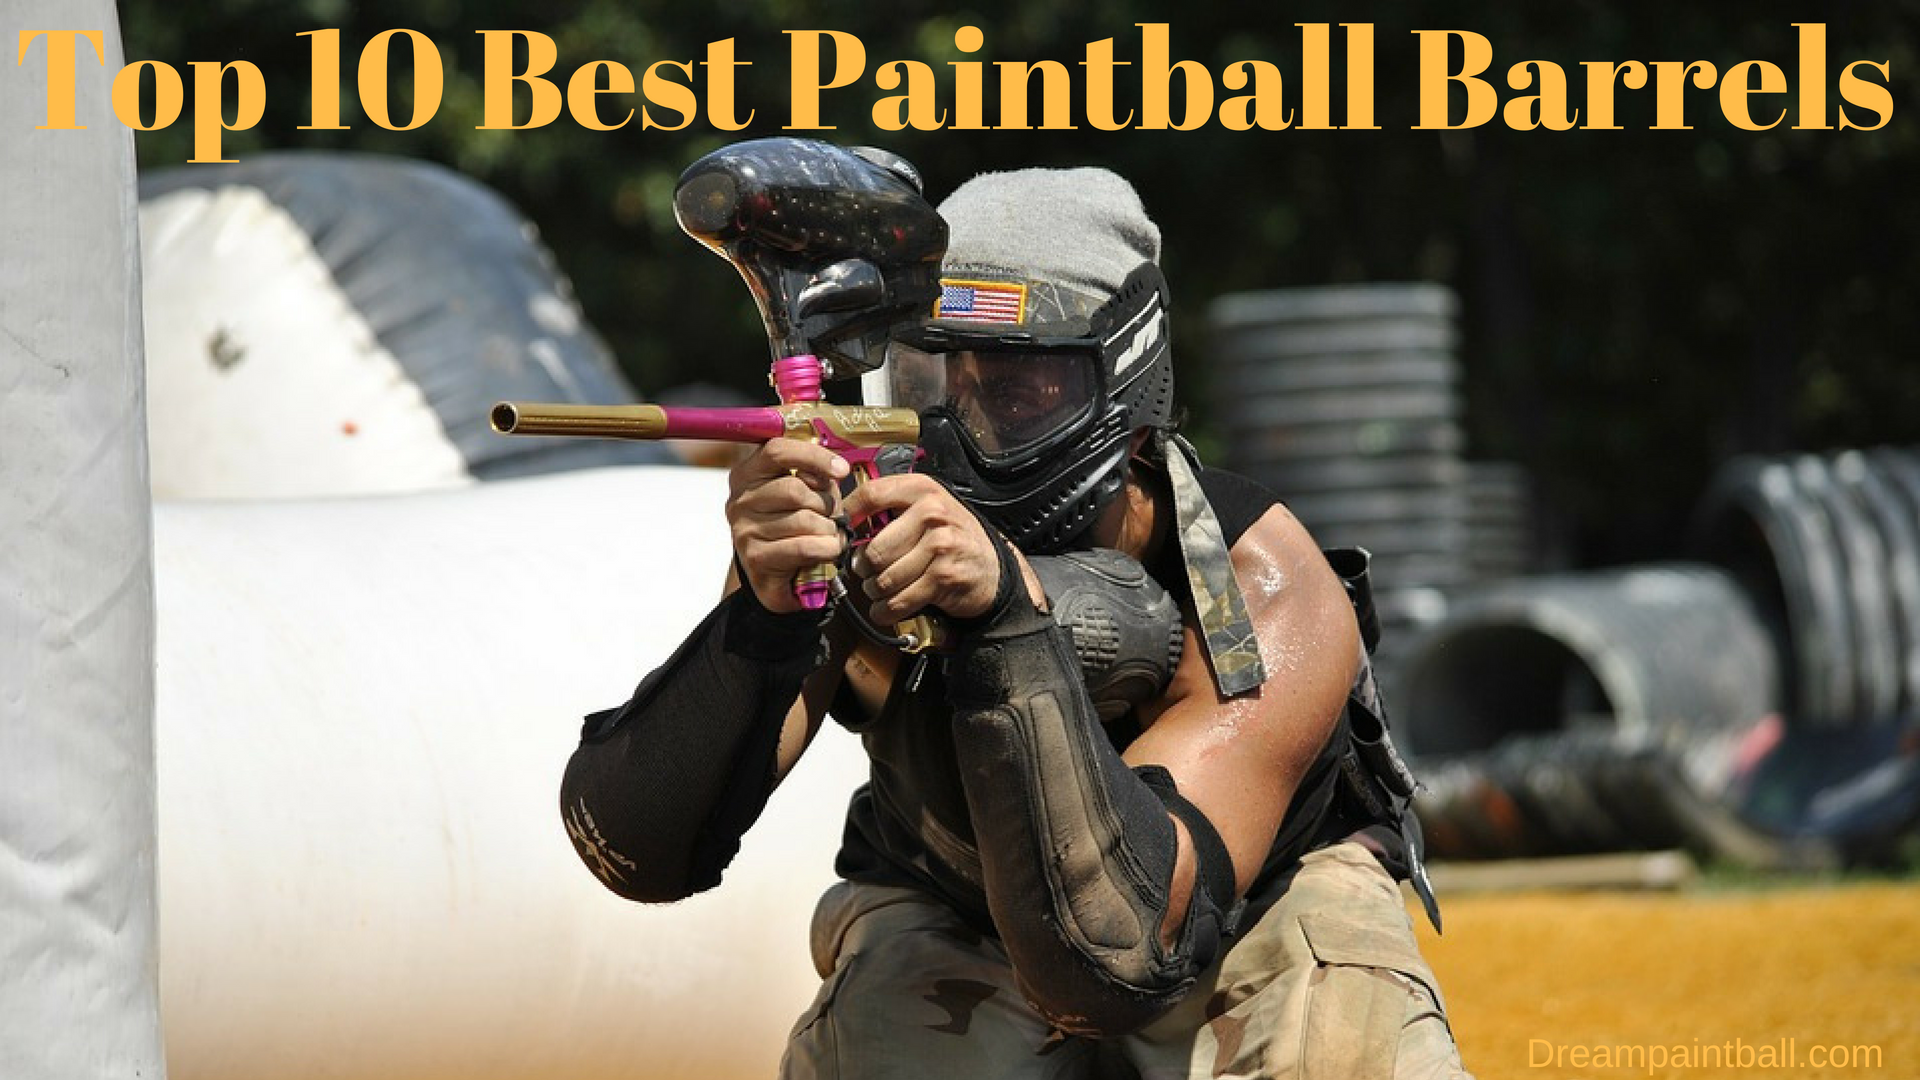 Best Paintball Barrels